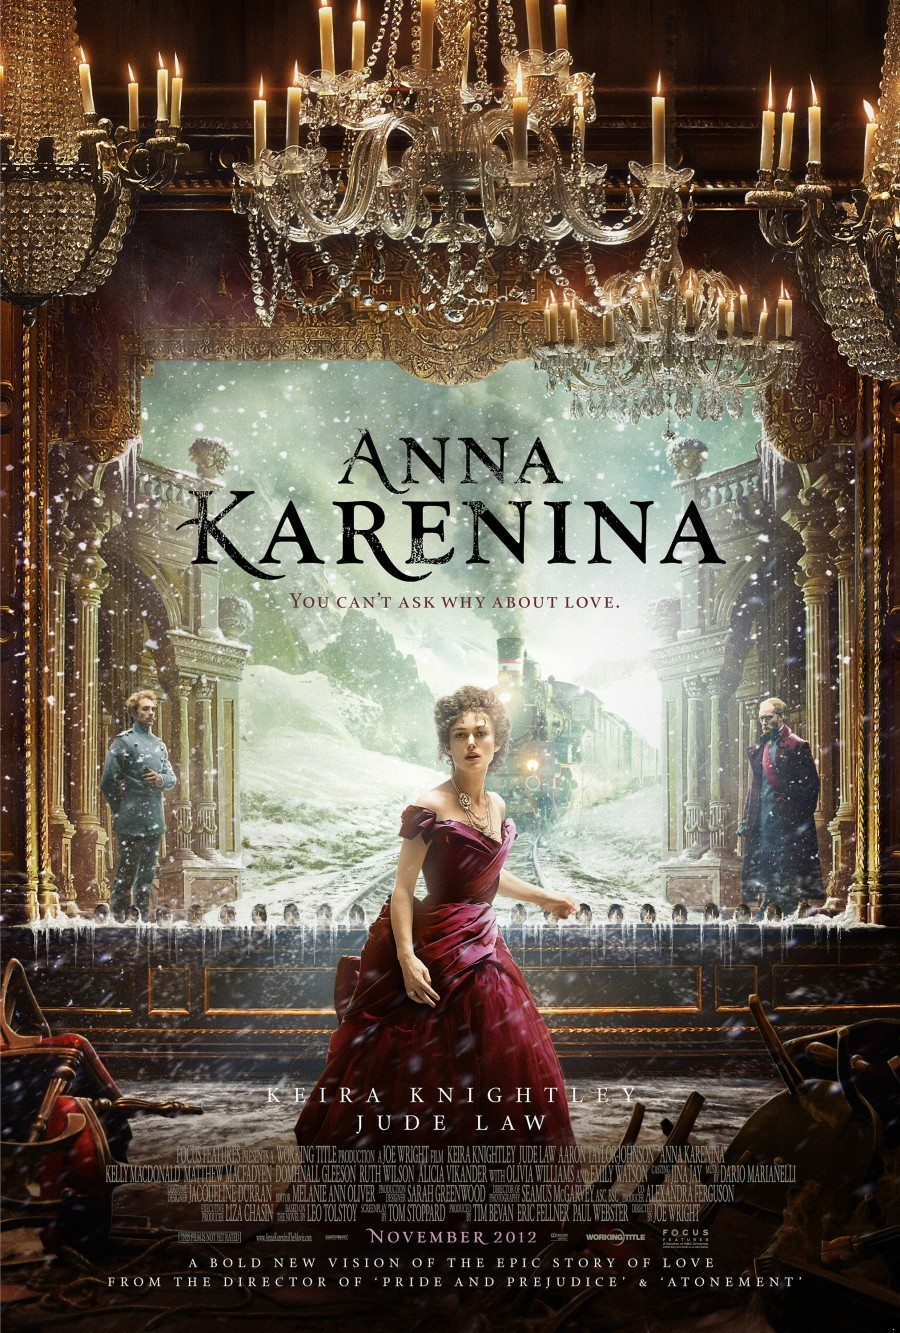 a review of the story of vronsky and anna love struggle Synopsis written during tolstoy's great mid-period, in which he also wrote war   anna karenina is the story of one woman's love and her passionate struggle.